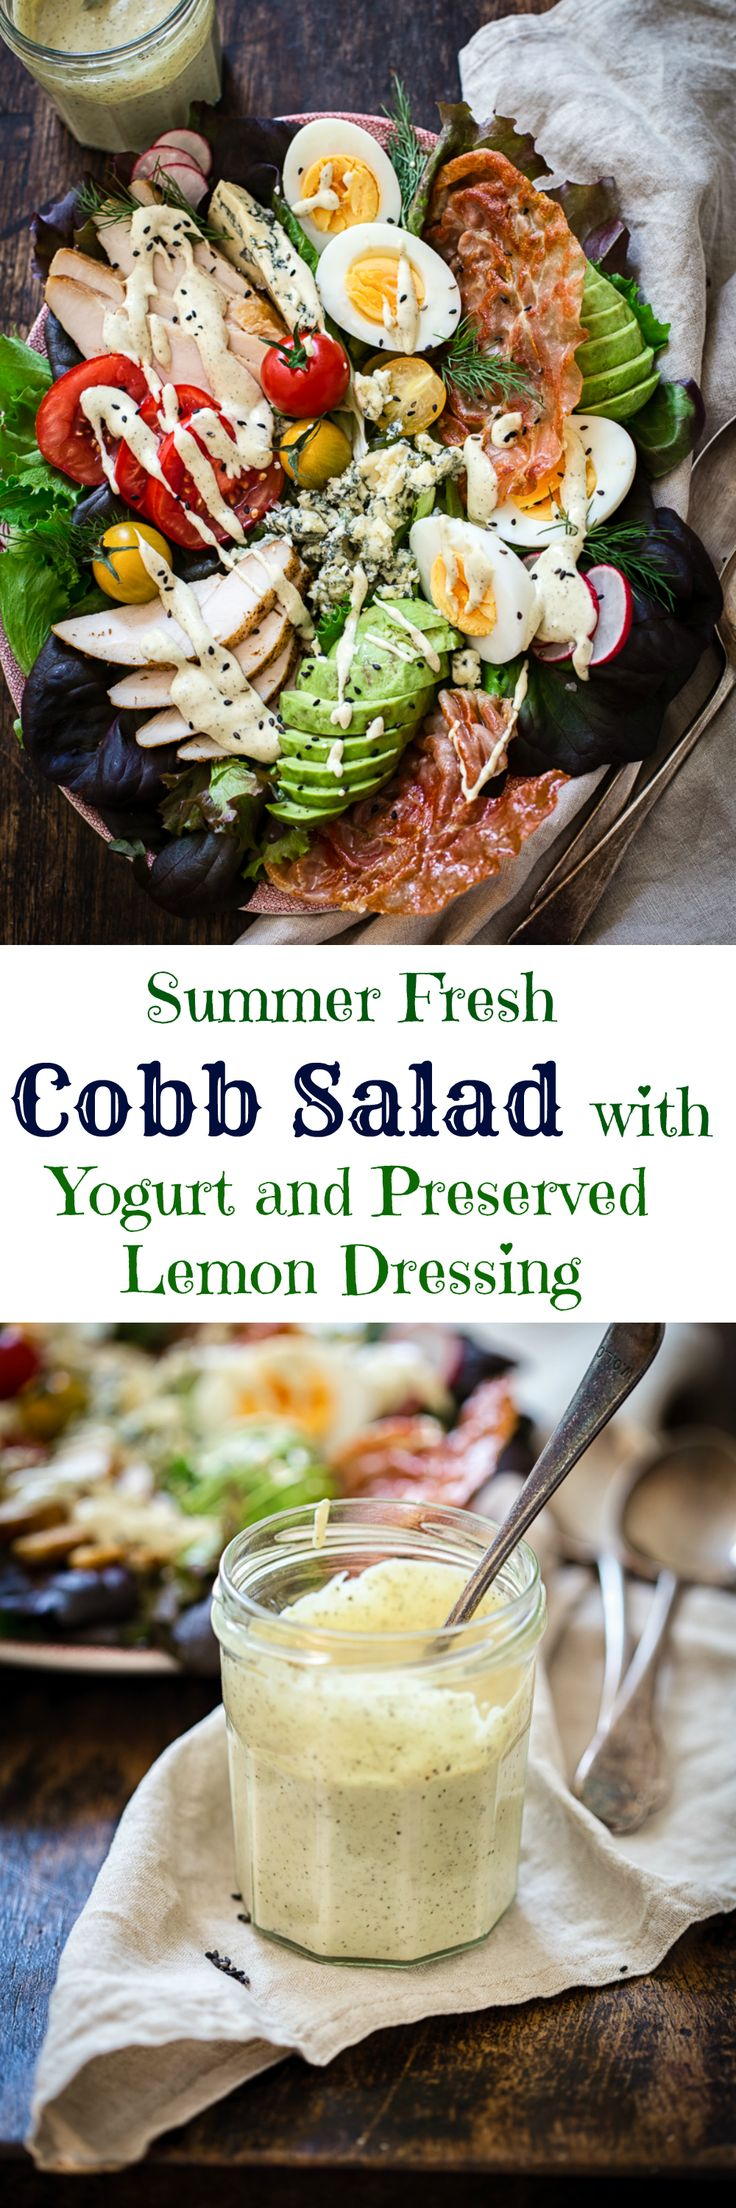 This Summer Fresh Cobb Salad with Yogurt and Preserved Lemon Dressing is a meal in itself, a delicious update on the popular classic!